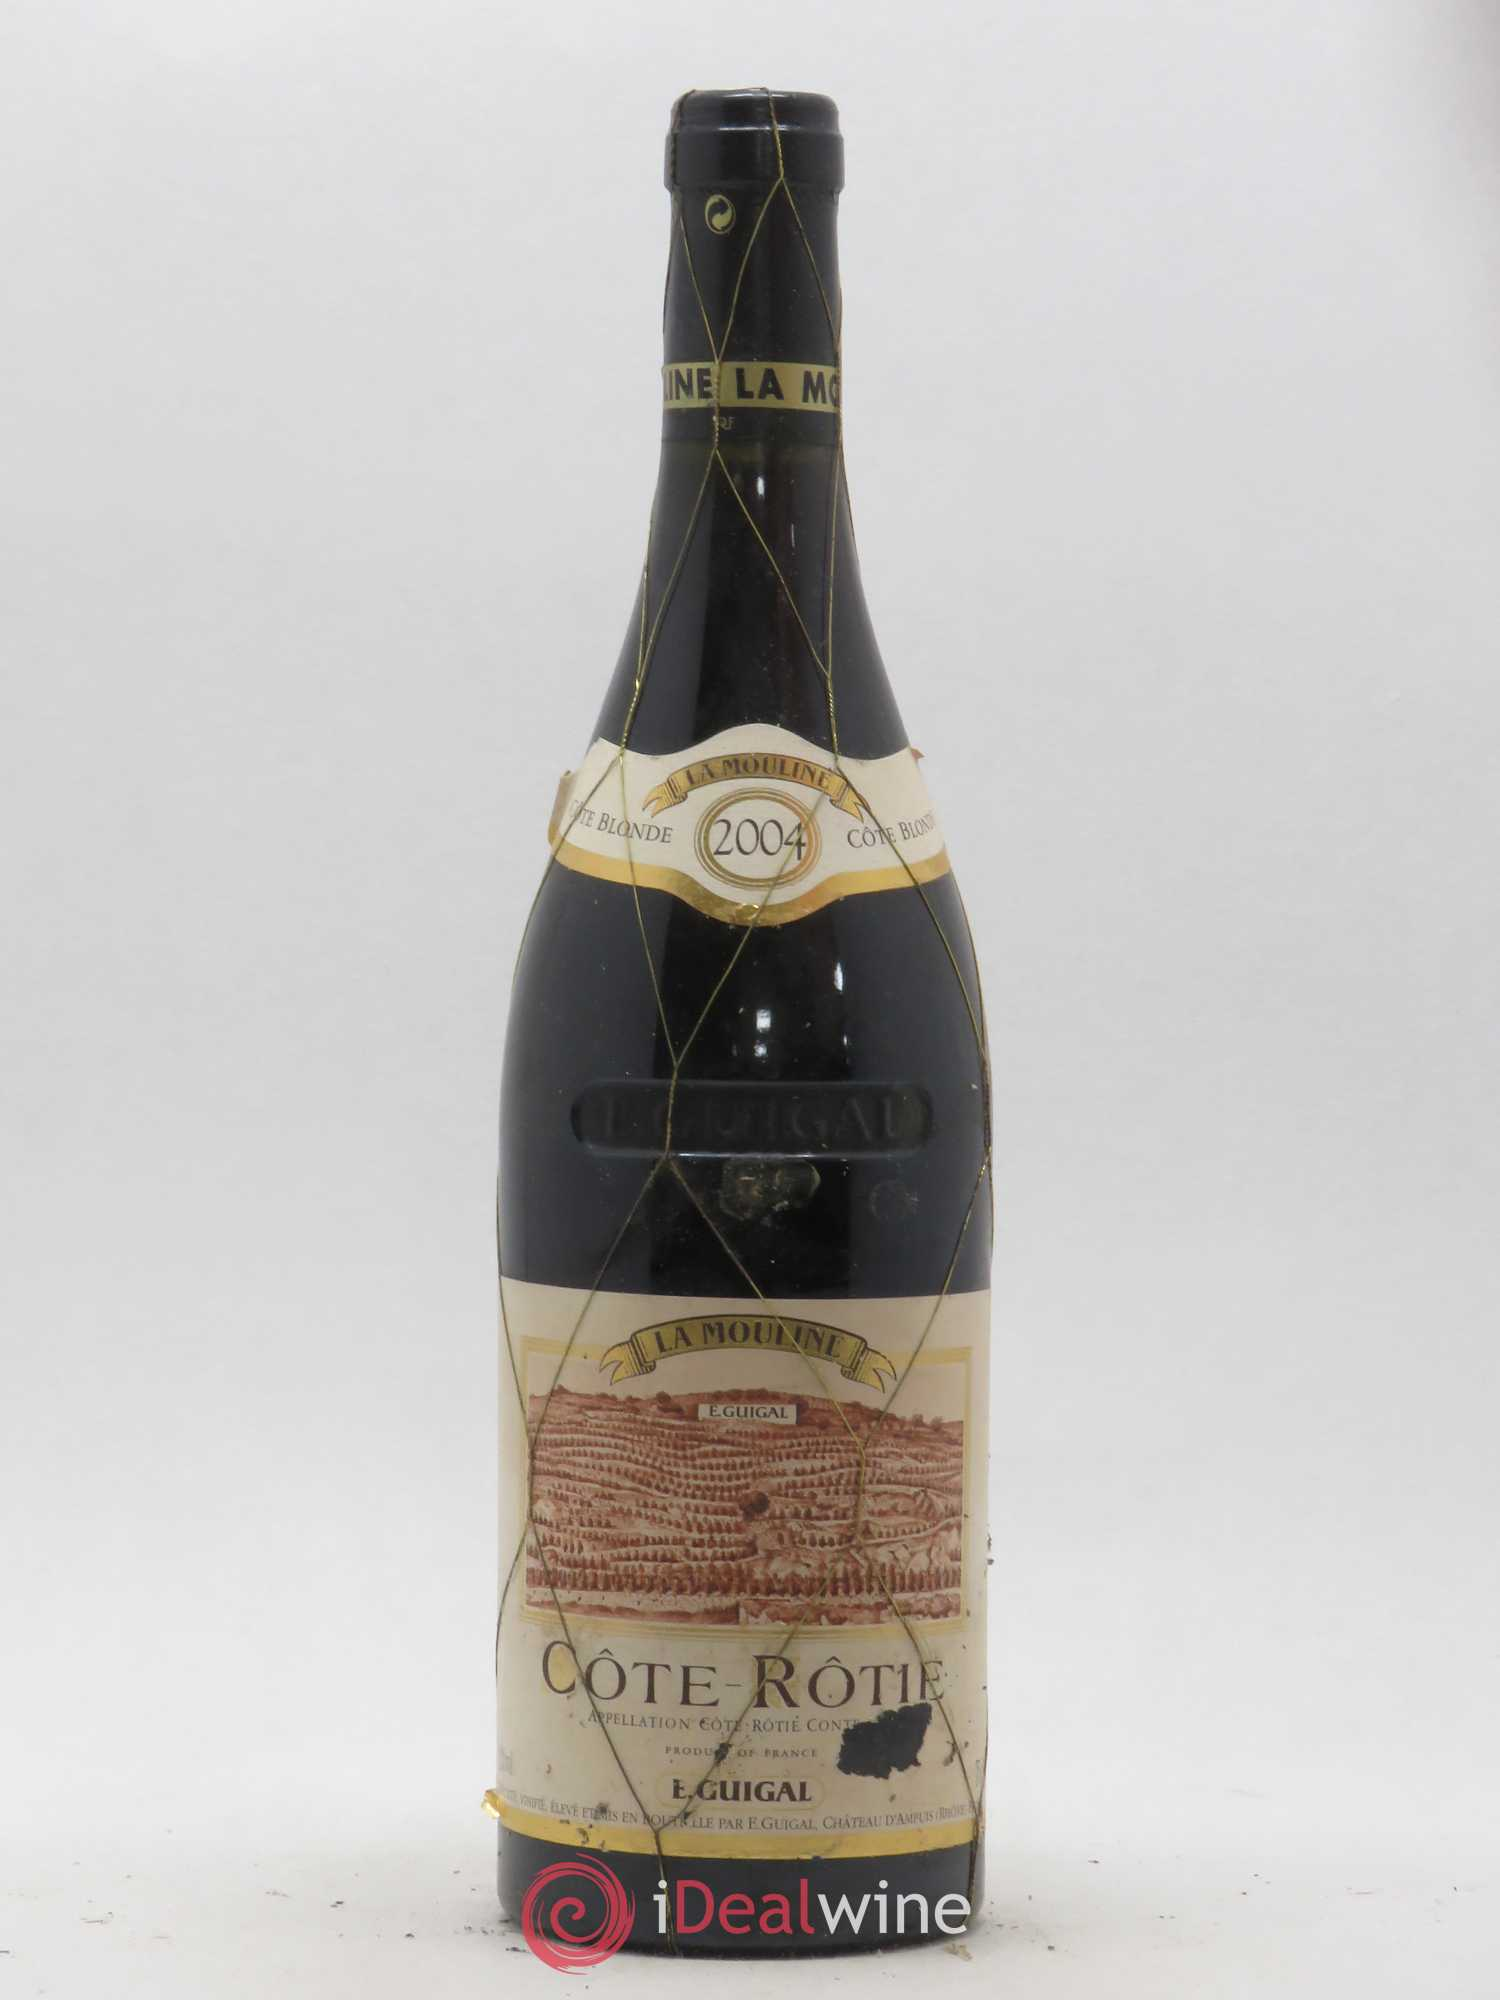 Côte-Rôtie La Mouline Guigal  2004 - Lot of 1 Bottle